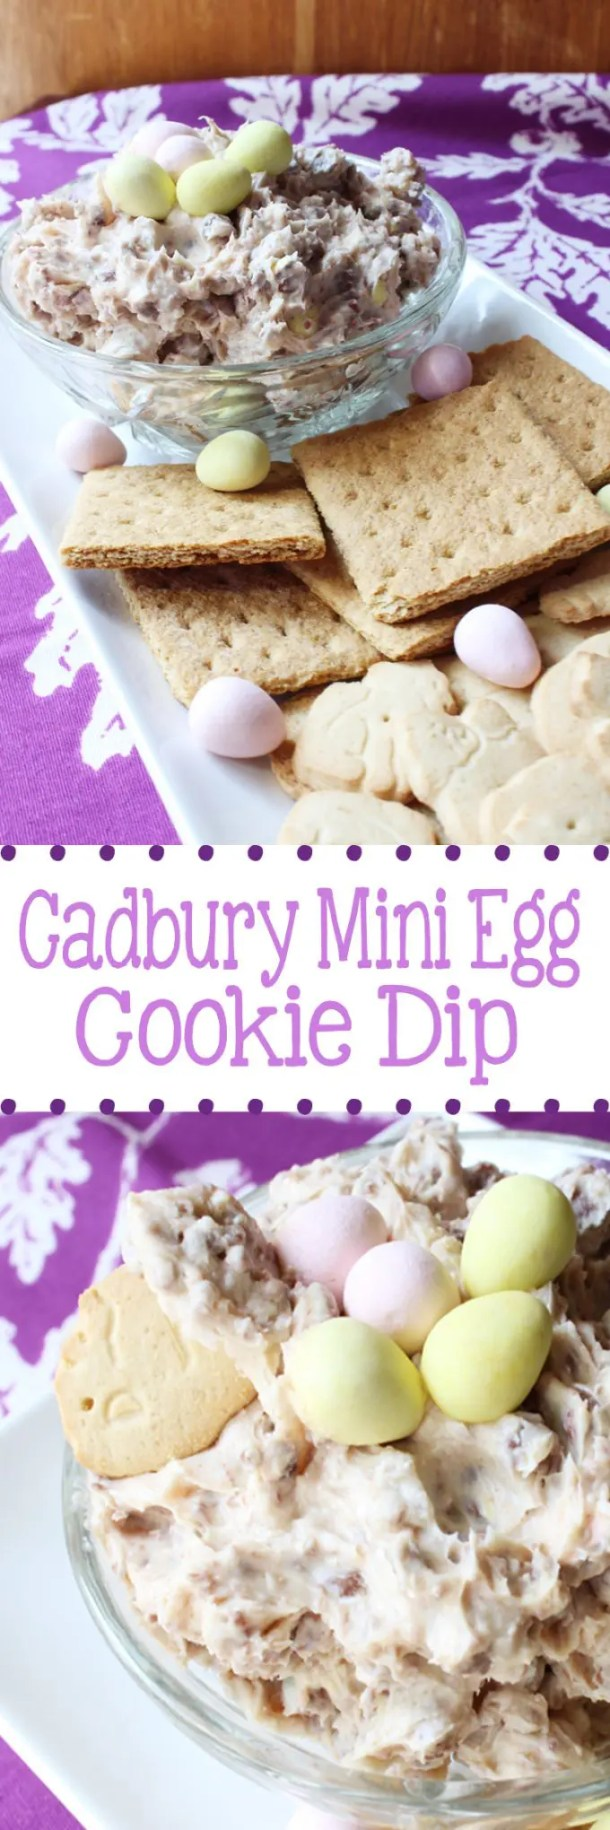 Cadbury Mini Egg Cookie Dip for Easter | EverydayMadeFresh.com